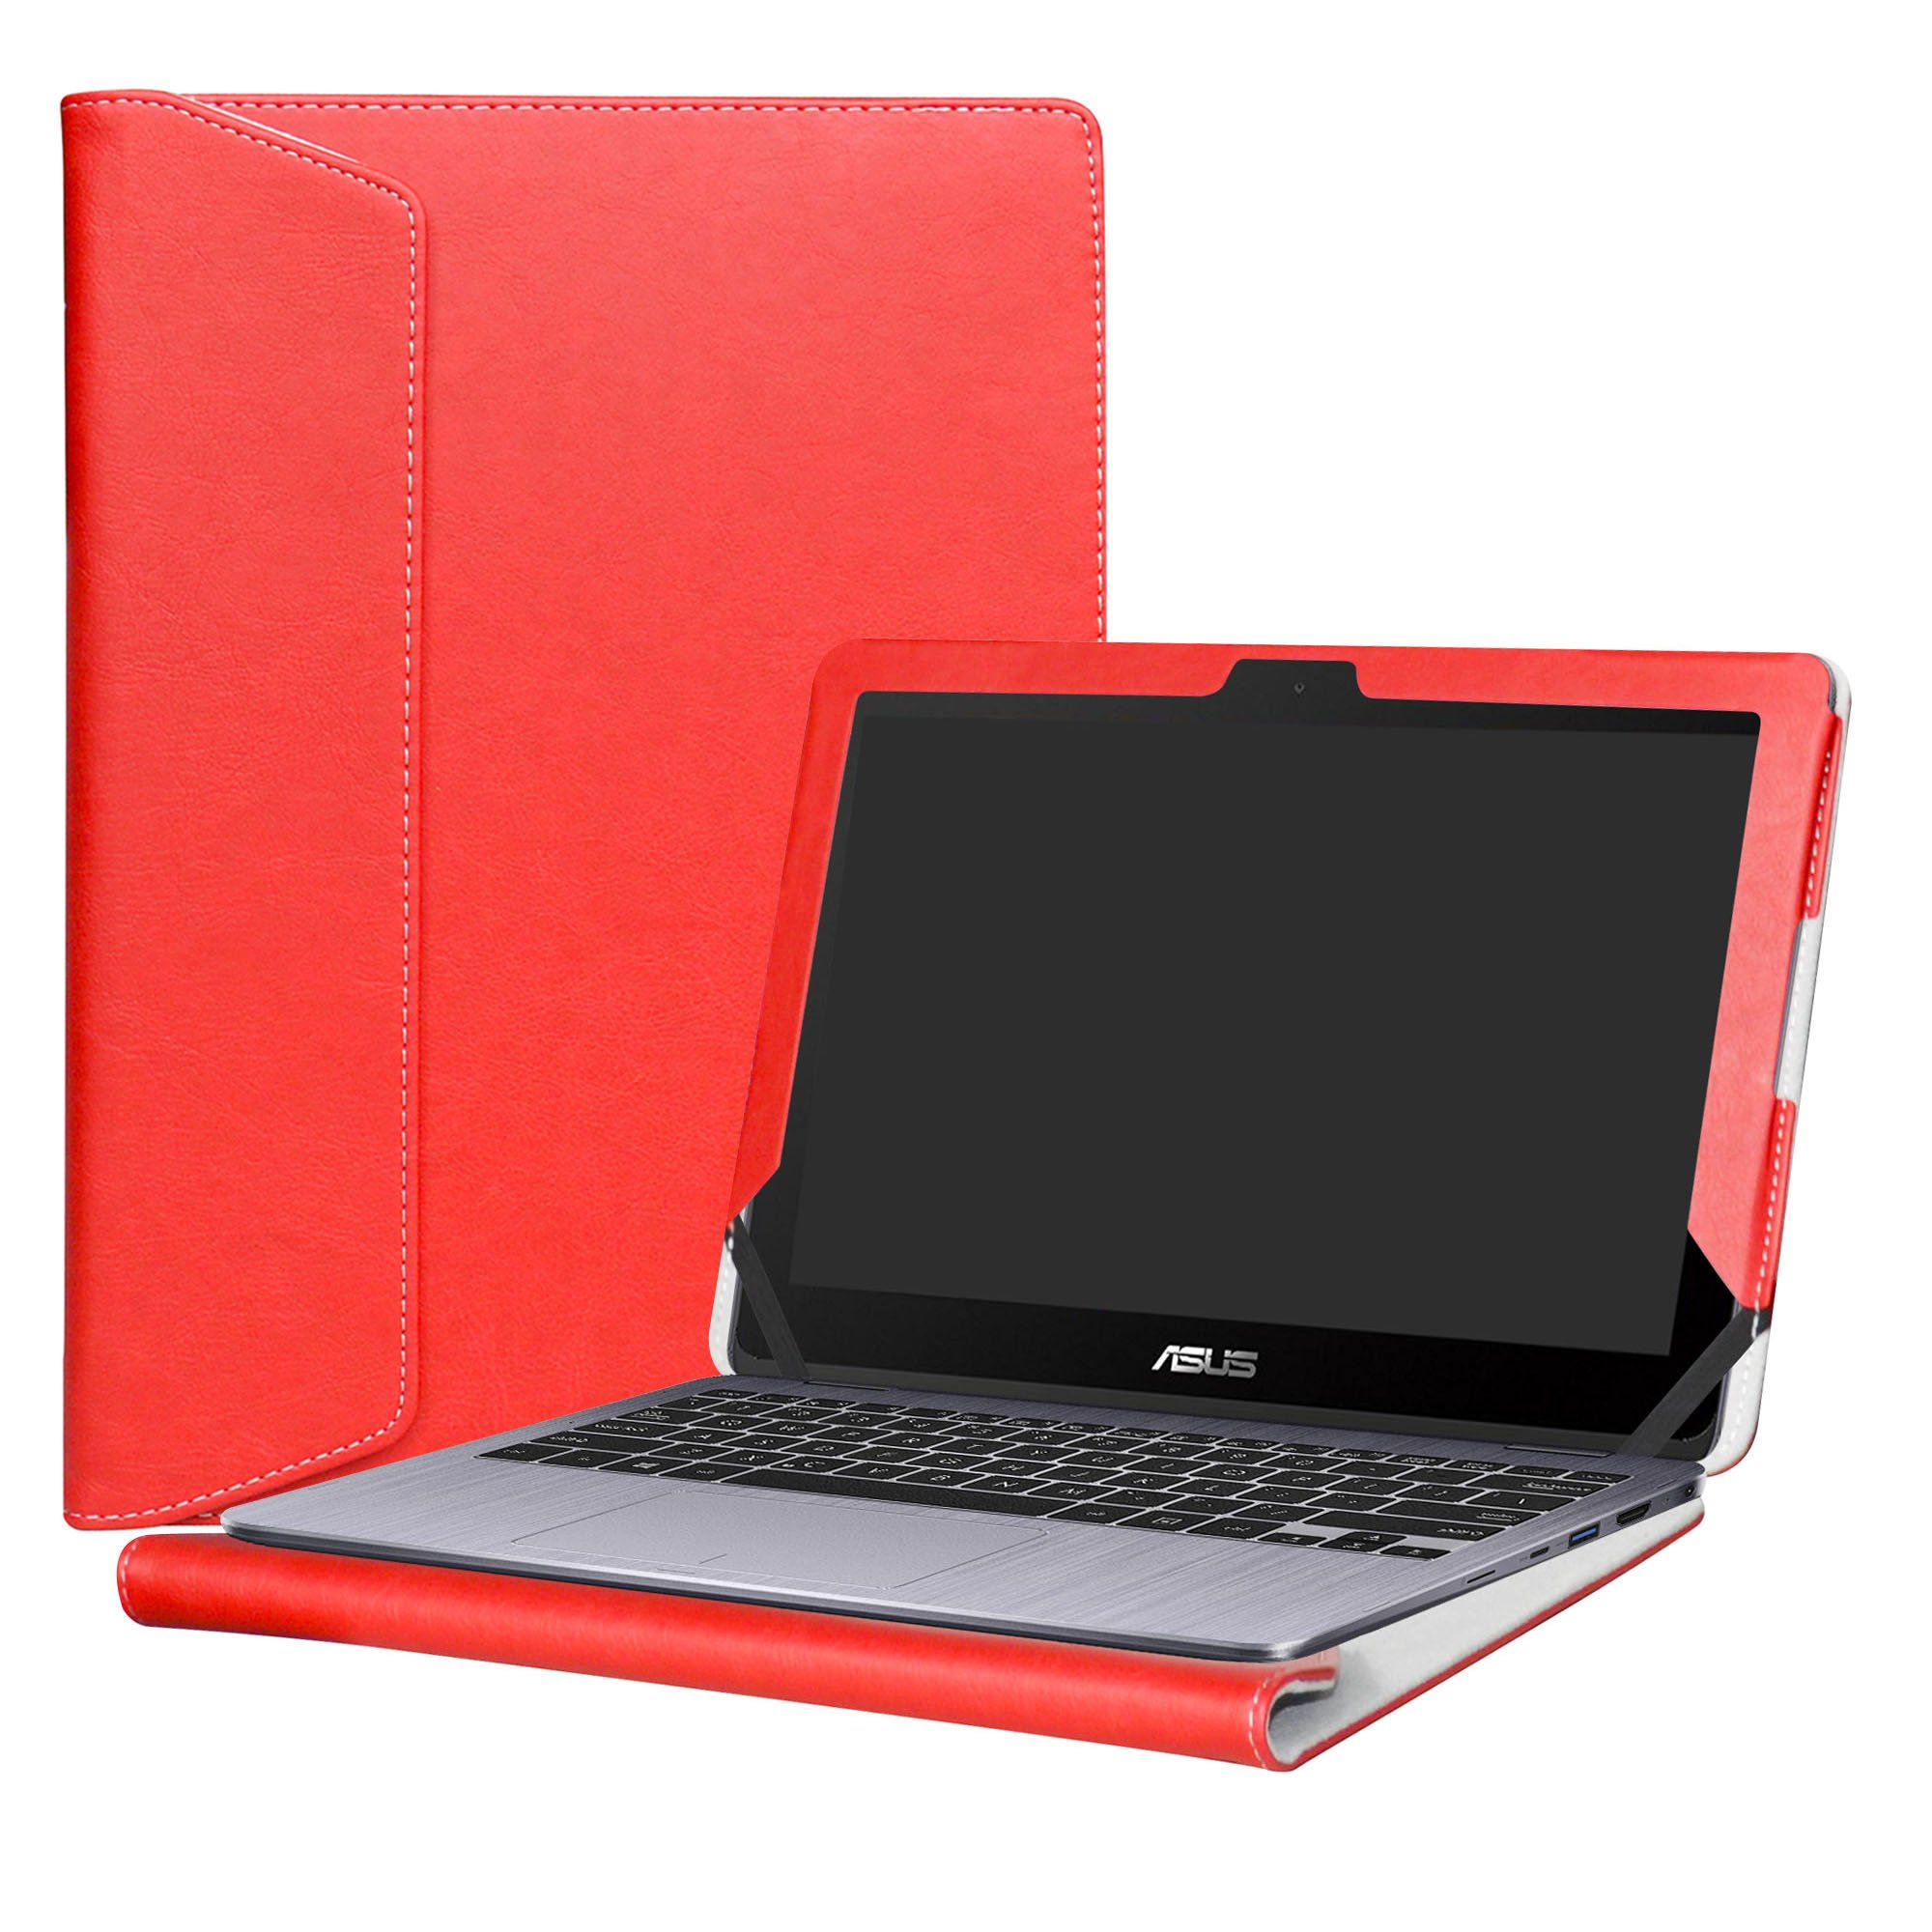 Alapmk Protective Case Cover For 11.6'' ASUS VivoBook Flip 12 TP203NA tp203na-uh01t Series Laptop(Warning:Only fit model TP203NA),Red